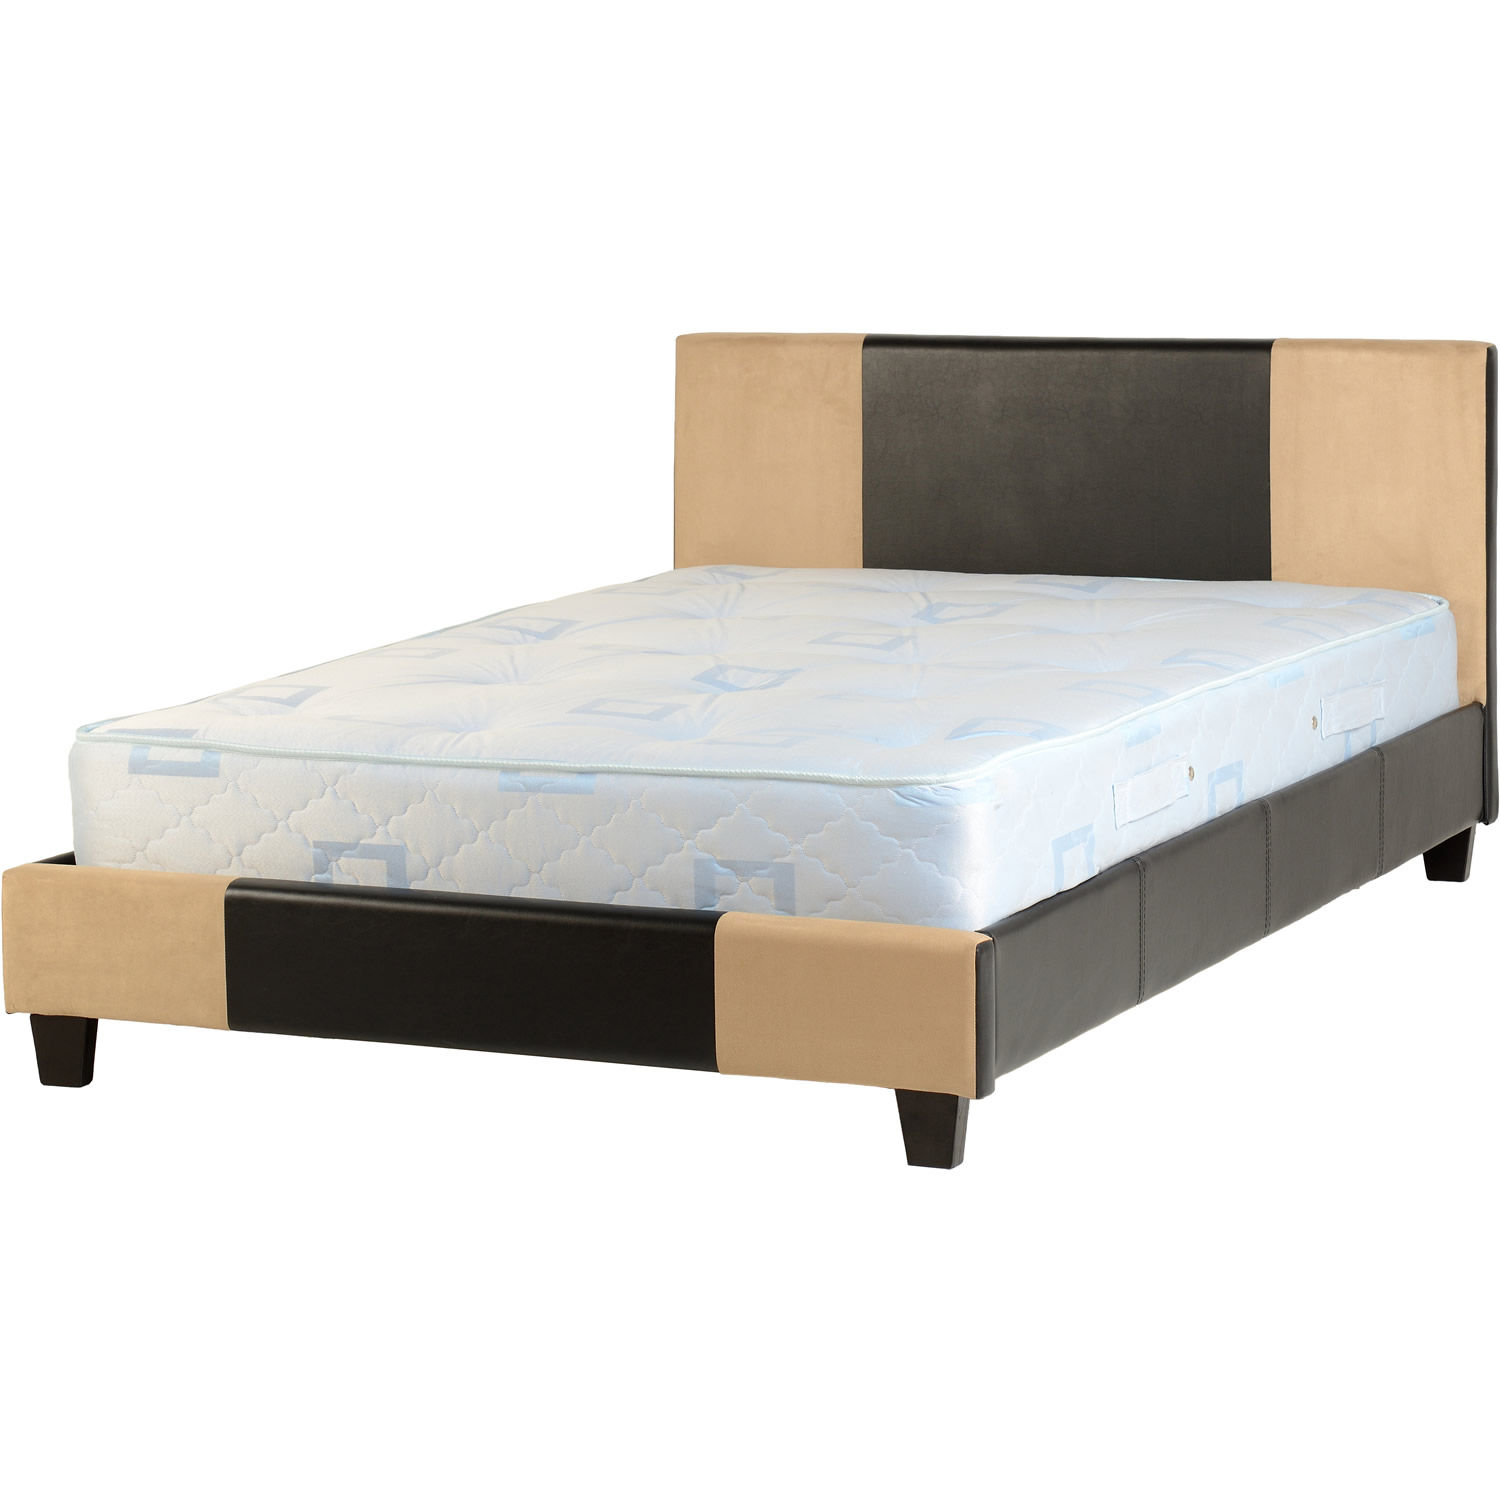 Image of: Luxury Upholstered Bed Frame